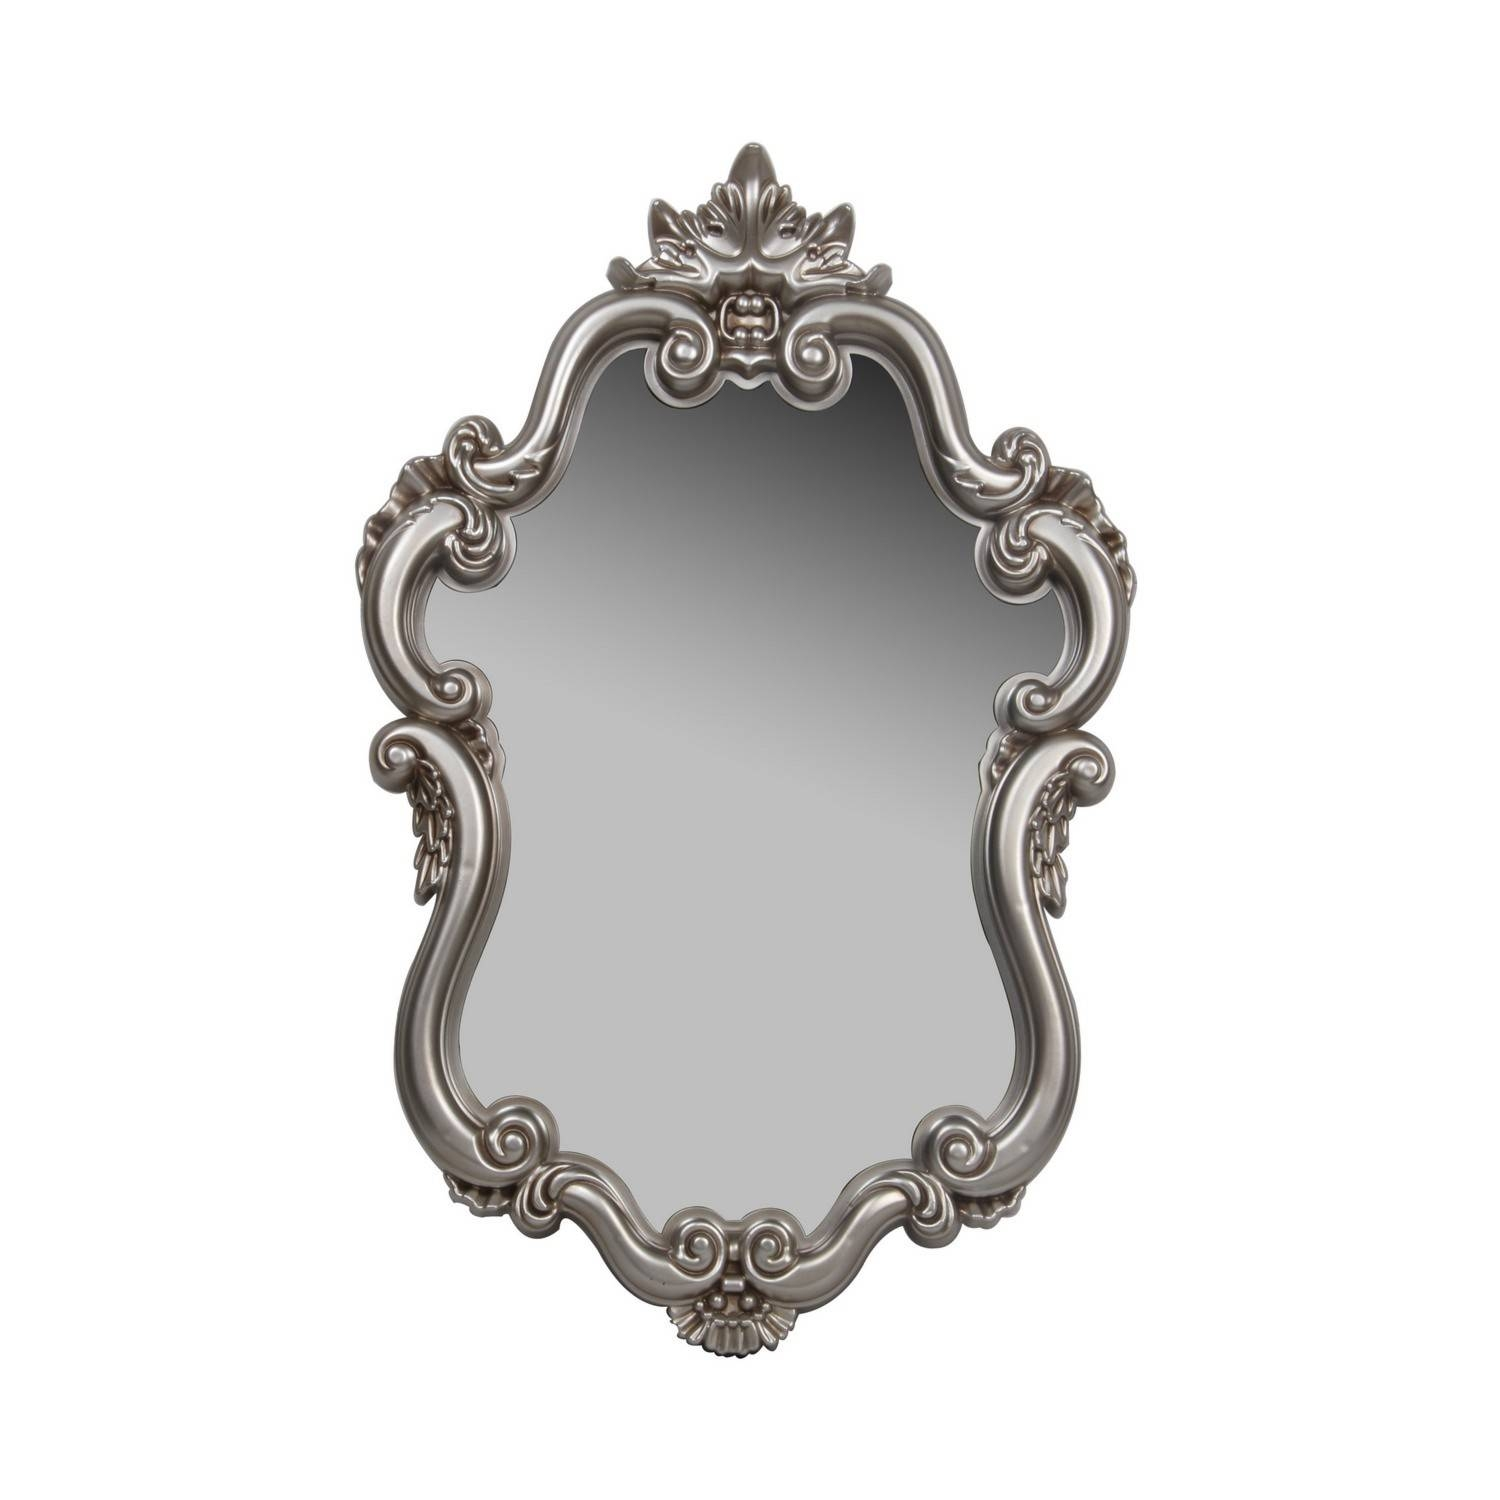 Large Oval Baroque Mirror Wall Acedf - Surripui inside Silver Baroque Mirrors (Image 8 of 15)